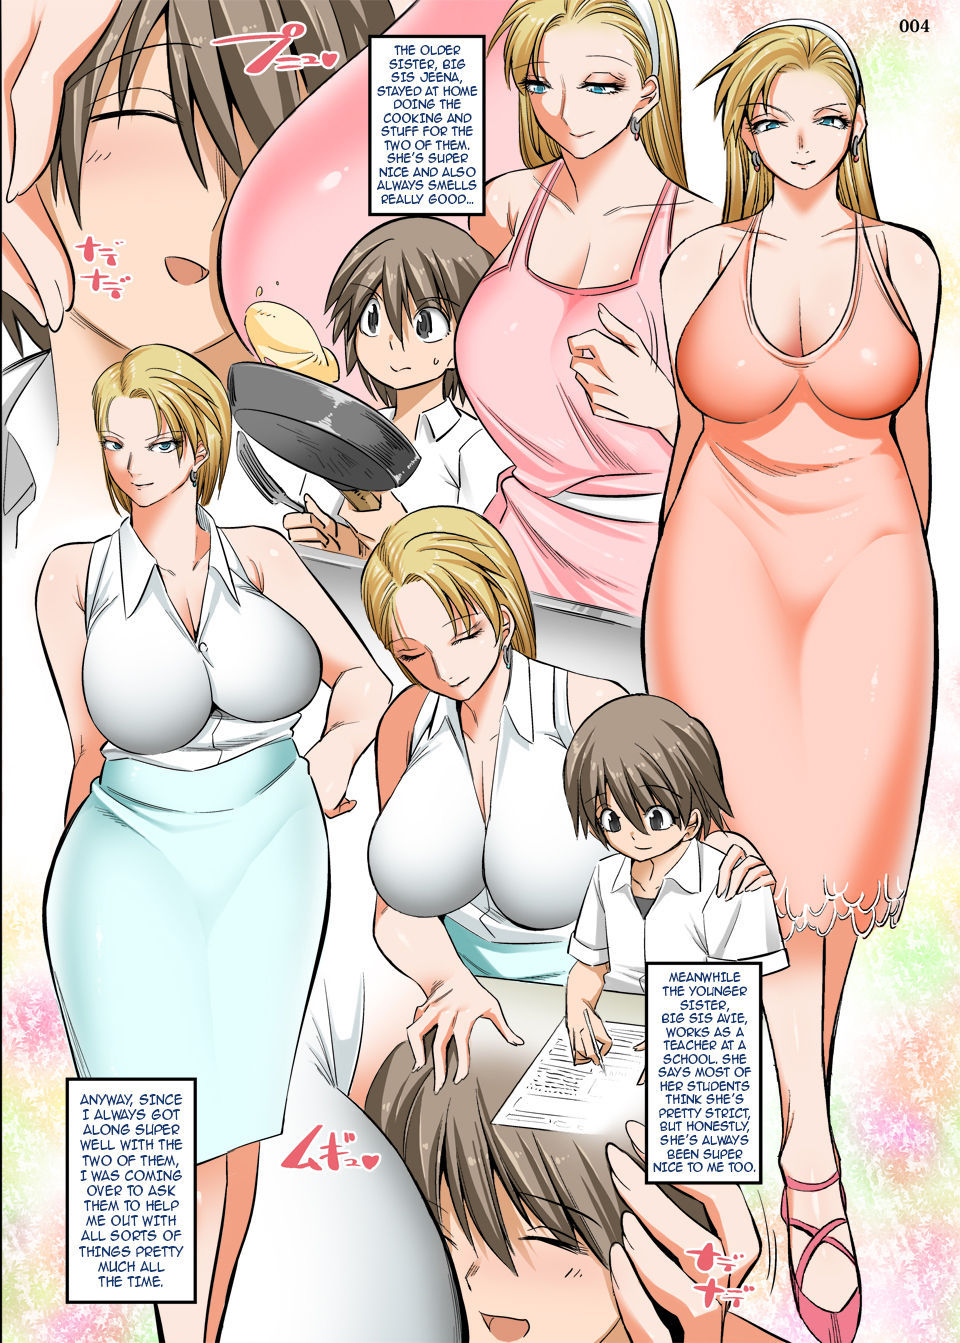 The Foreign Succubus Sisters Next Door